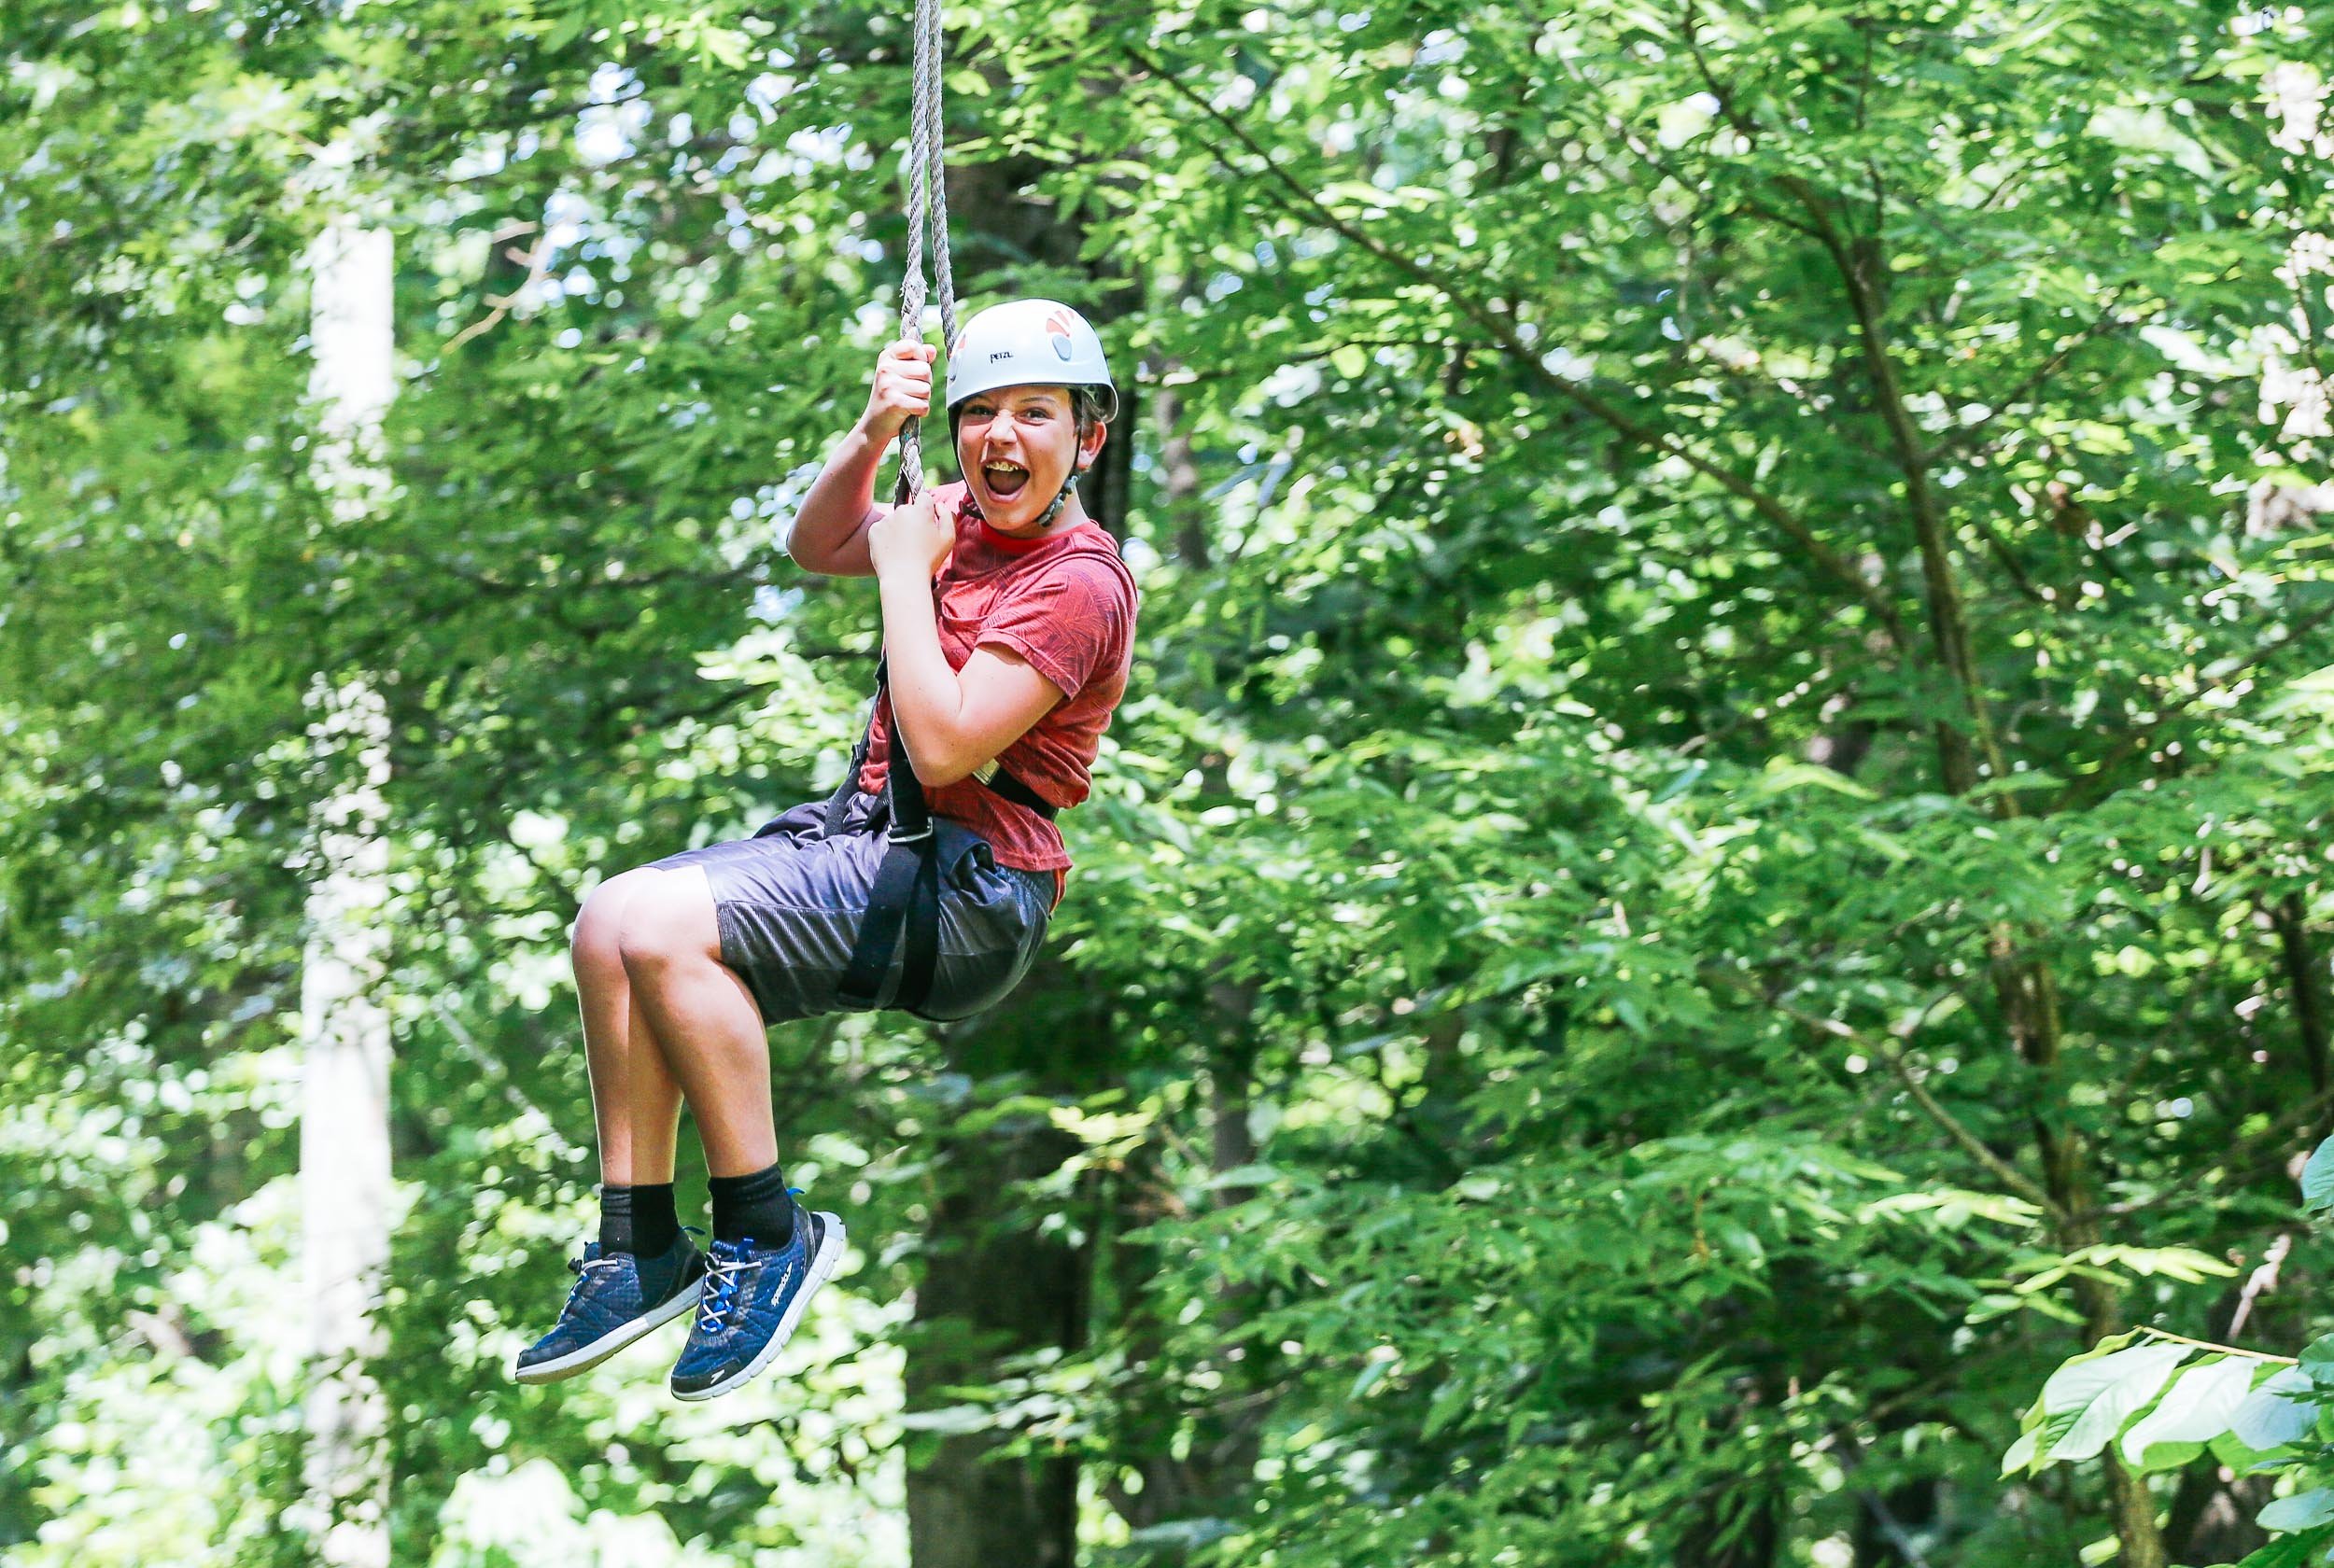 Activities: High Ropes Course